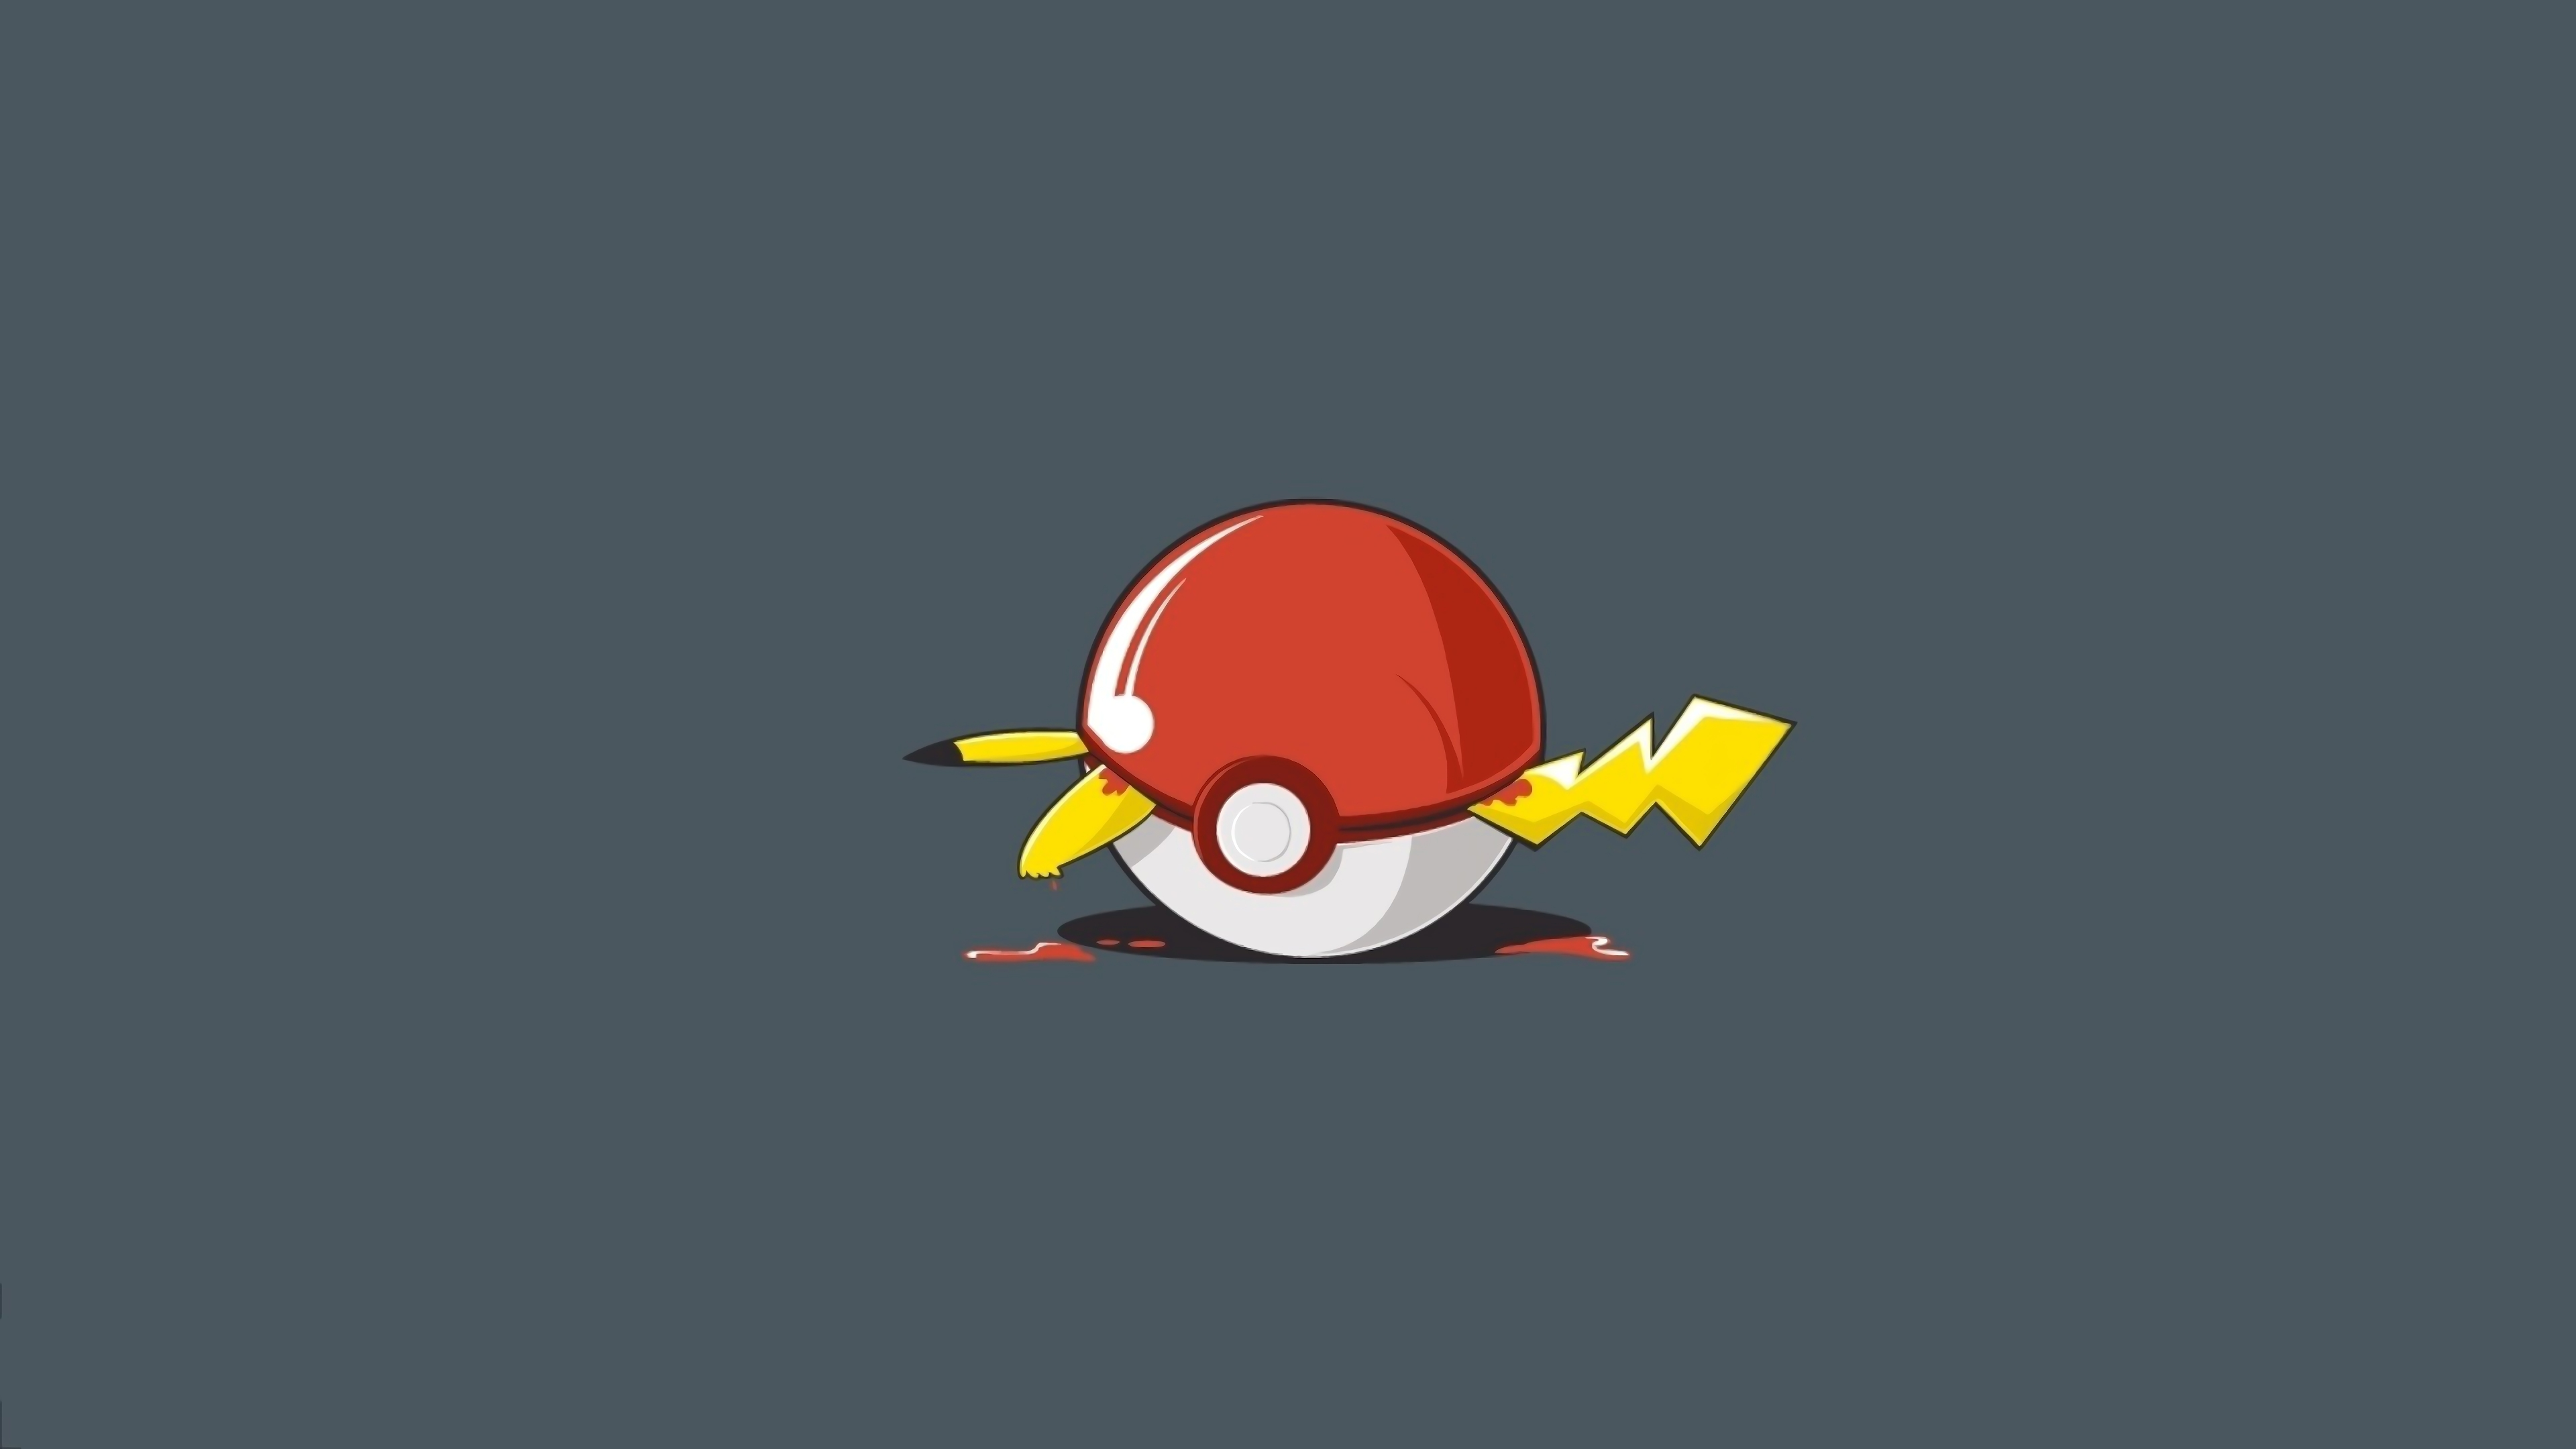 pikachu pokeball 1541974241 - Pikachu Pokeball - pokemon wallpapers, pikachu wallpapers, hd-wallpapers, digital art wallpapers, artist wallpapers, 4k-wallpapers